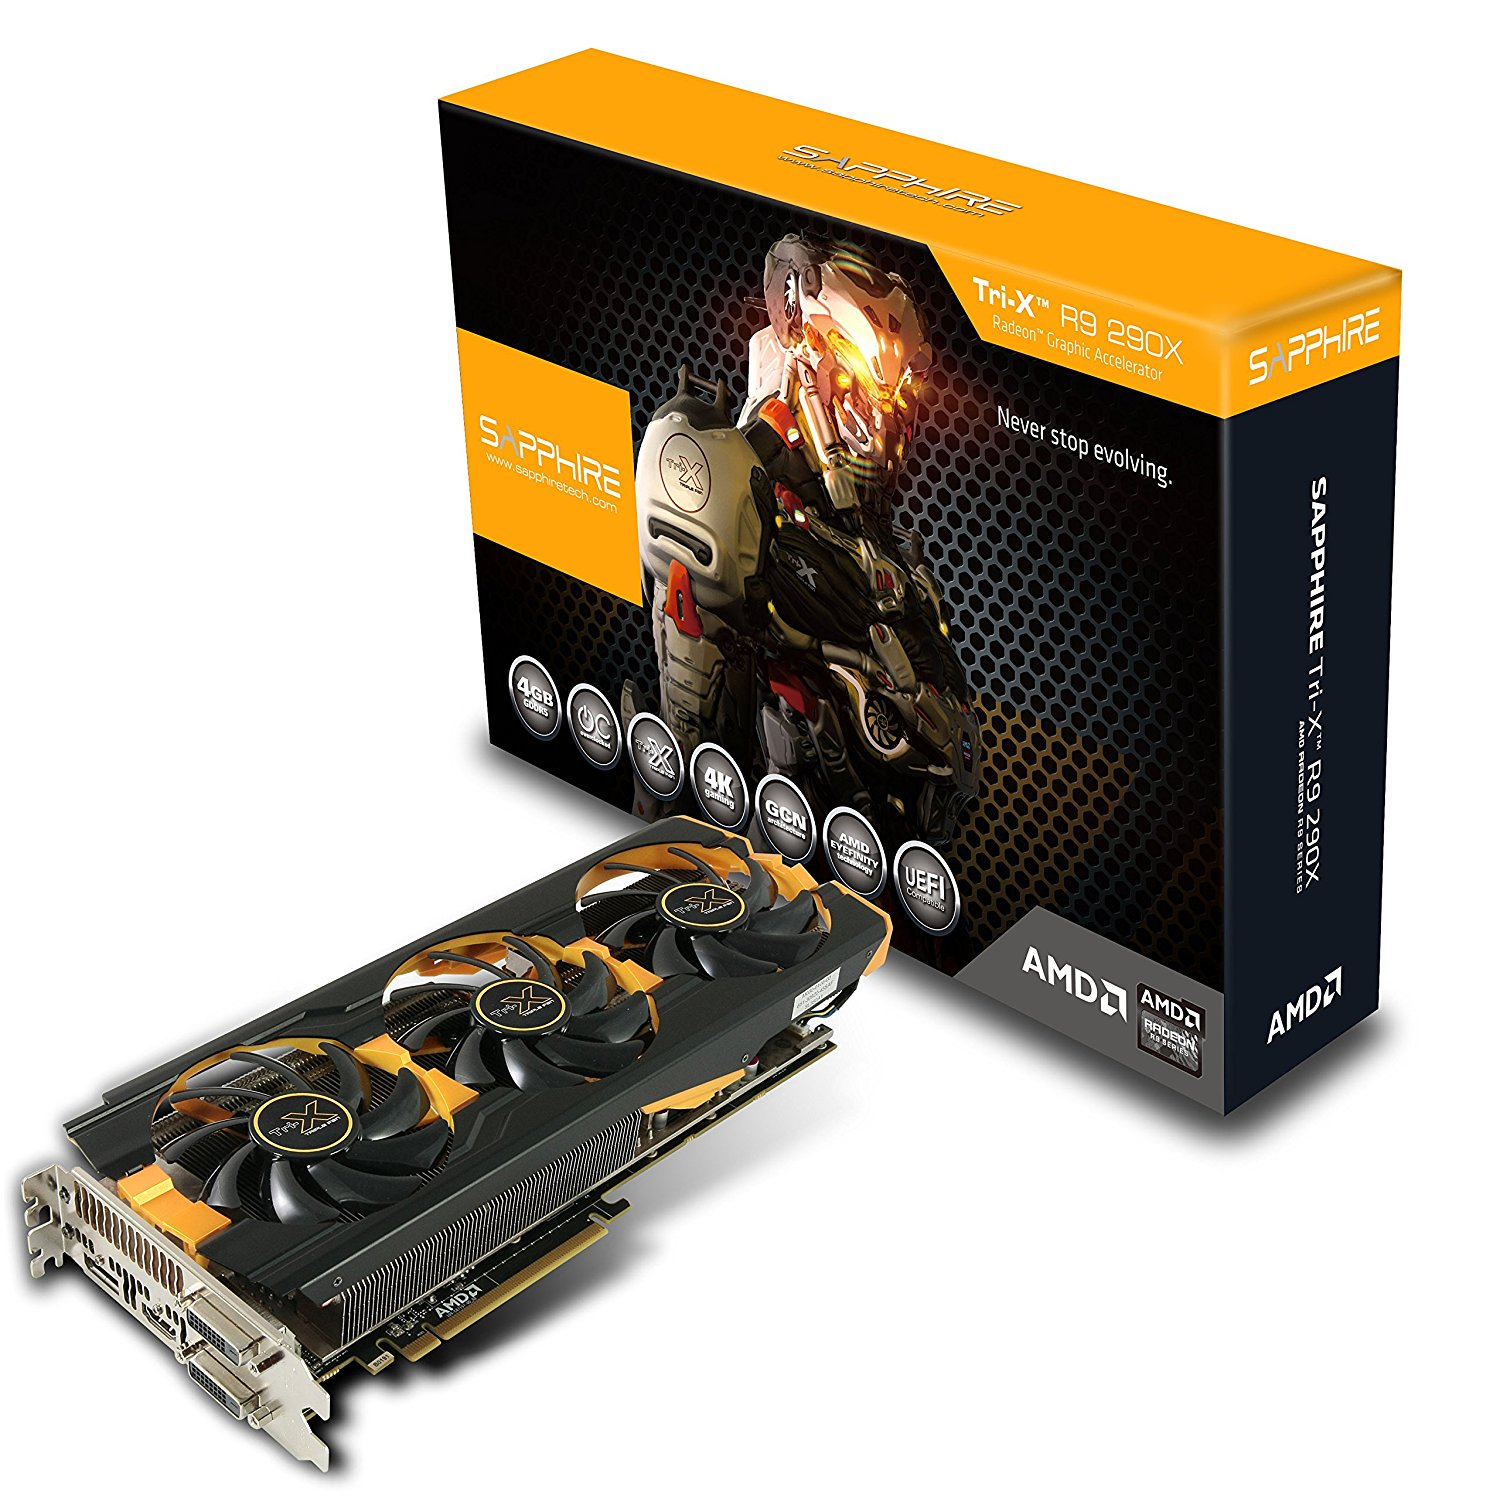 Sapphire Radeon R9 290X 4GB GDDR5 DUAL DVI-D/HDMI/DP TRI-X OC Version PCI-Express Graphics Card